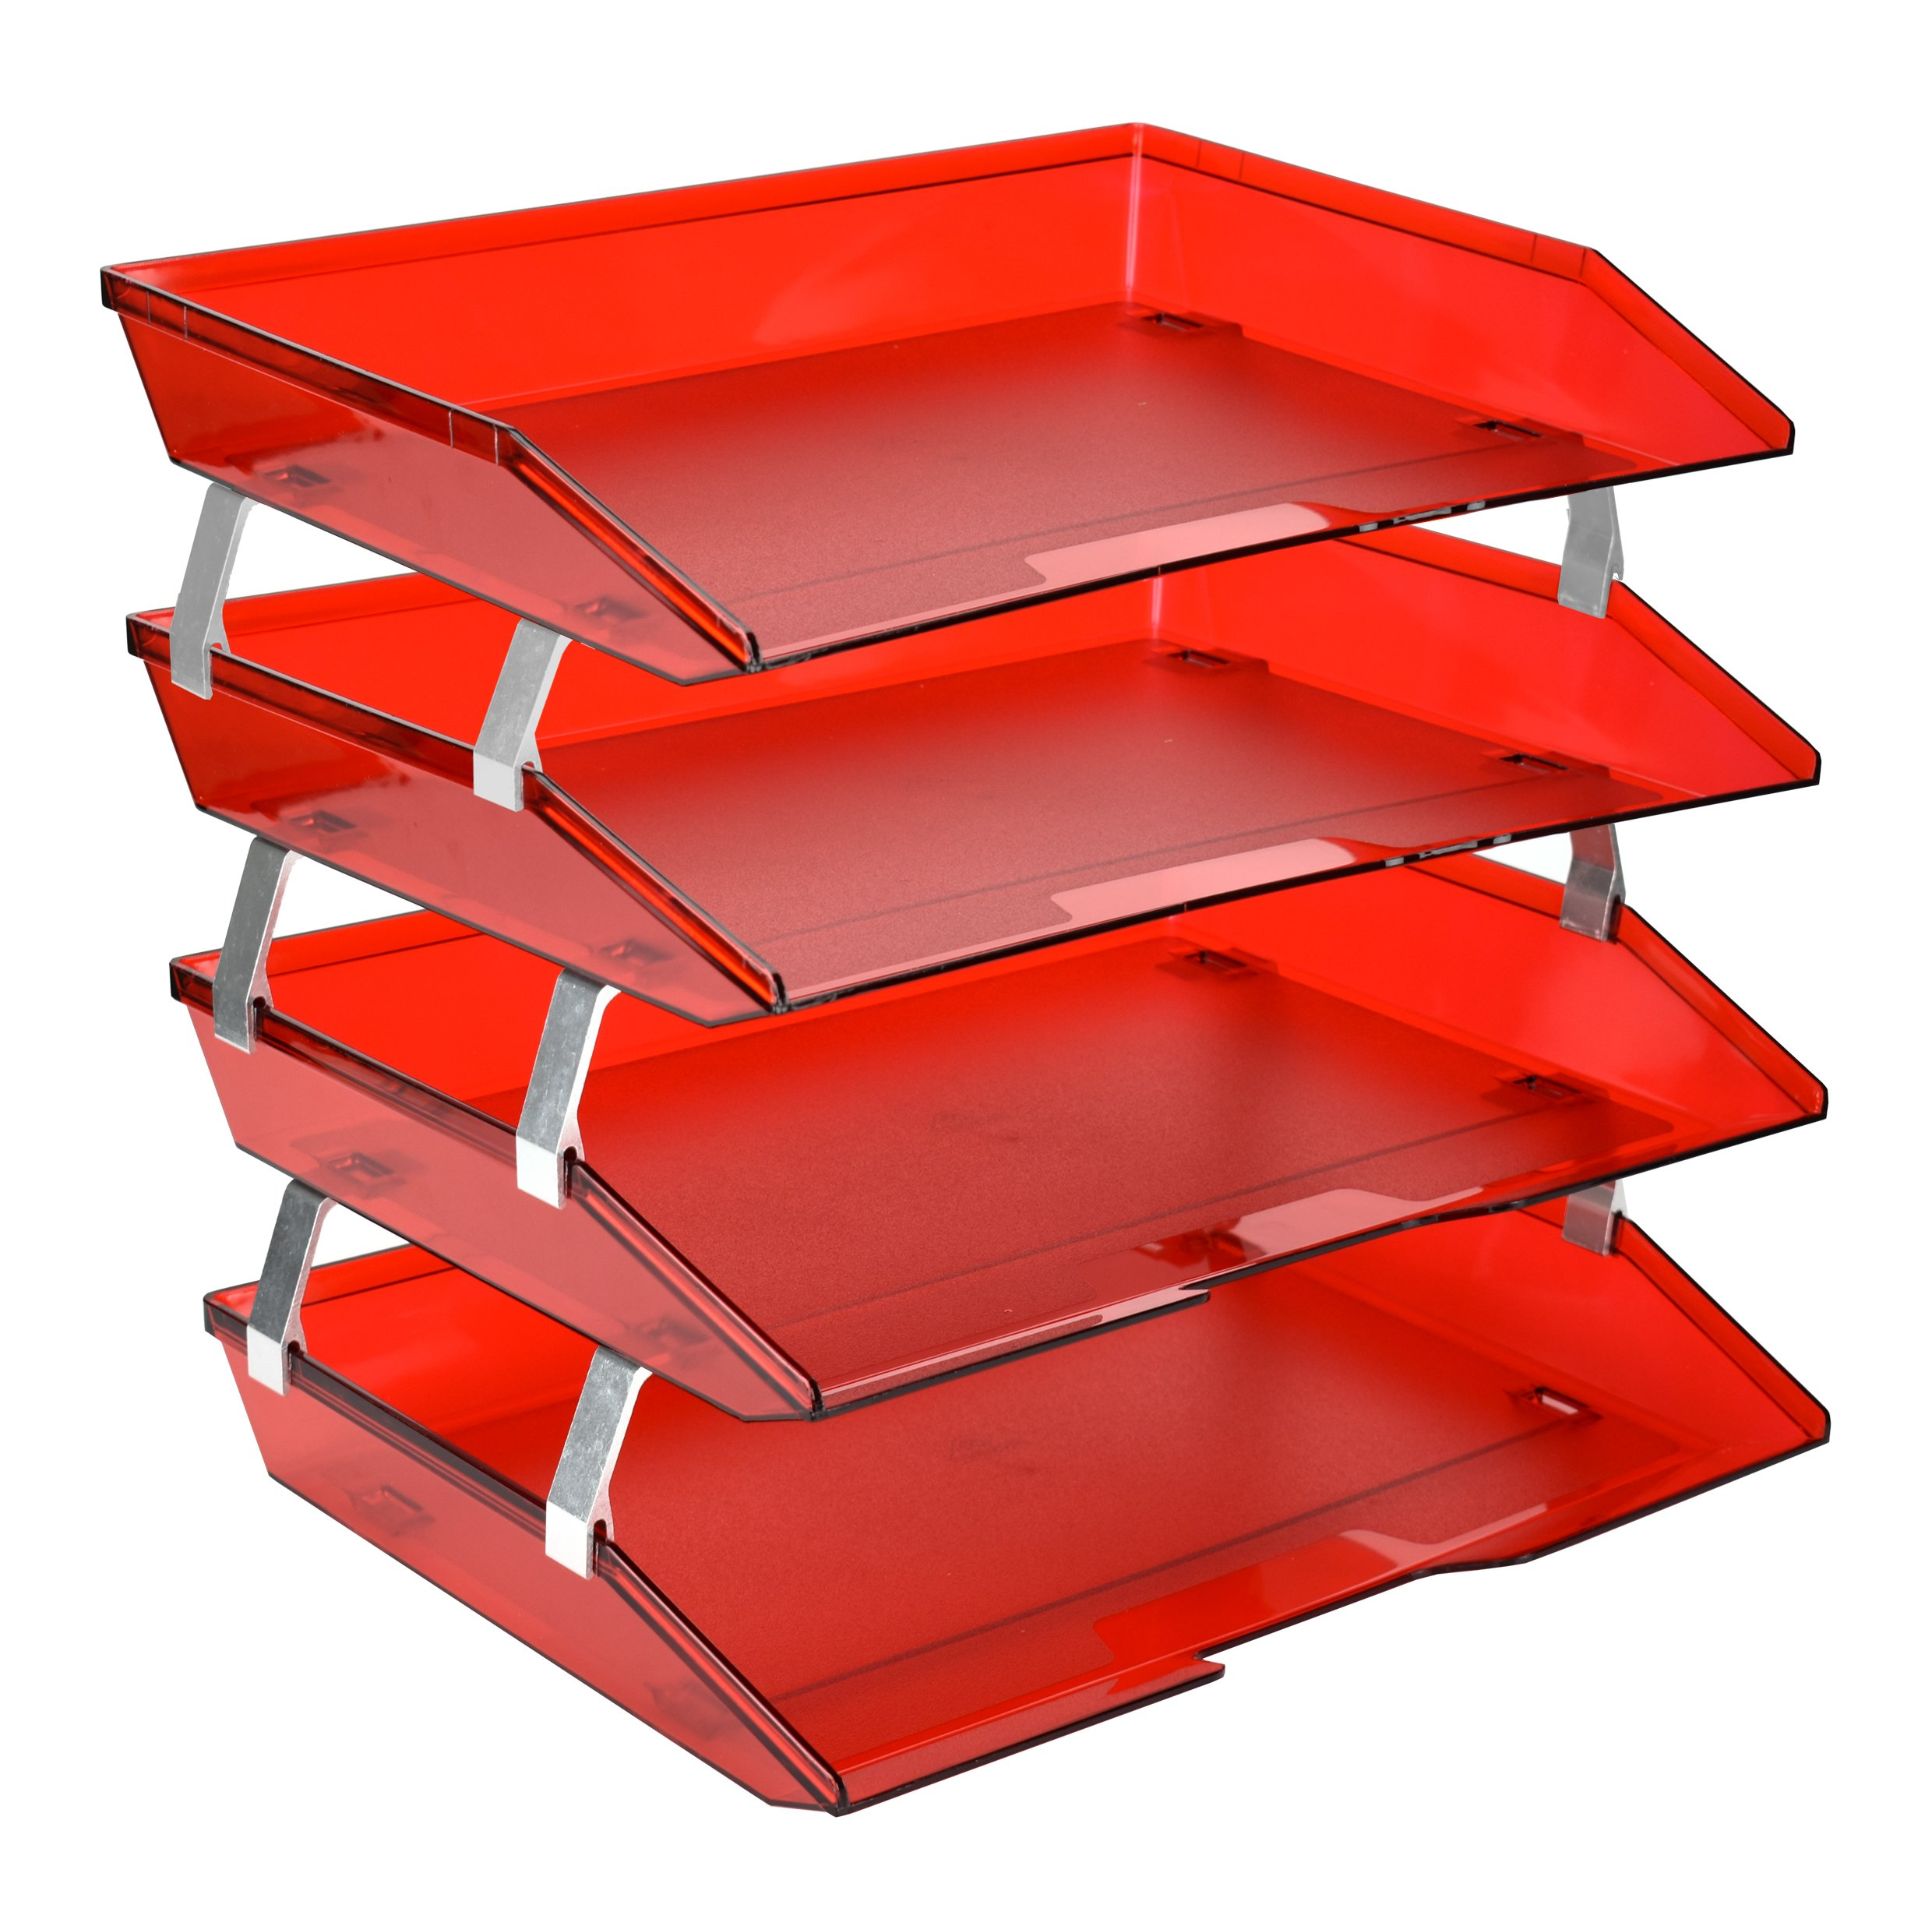 Acrimet Facility Letter Tray 4 Tiers (Clear Red Color)